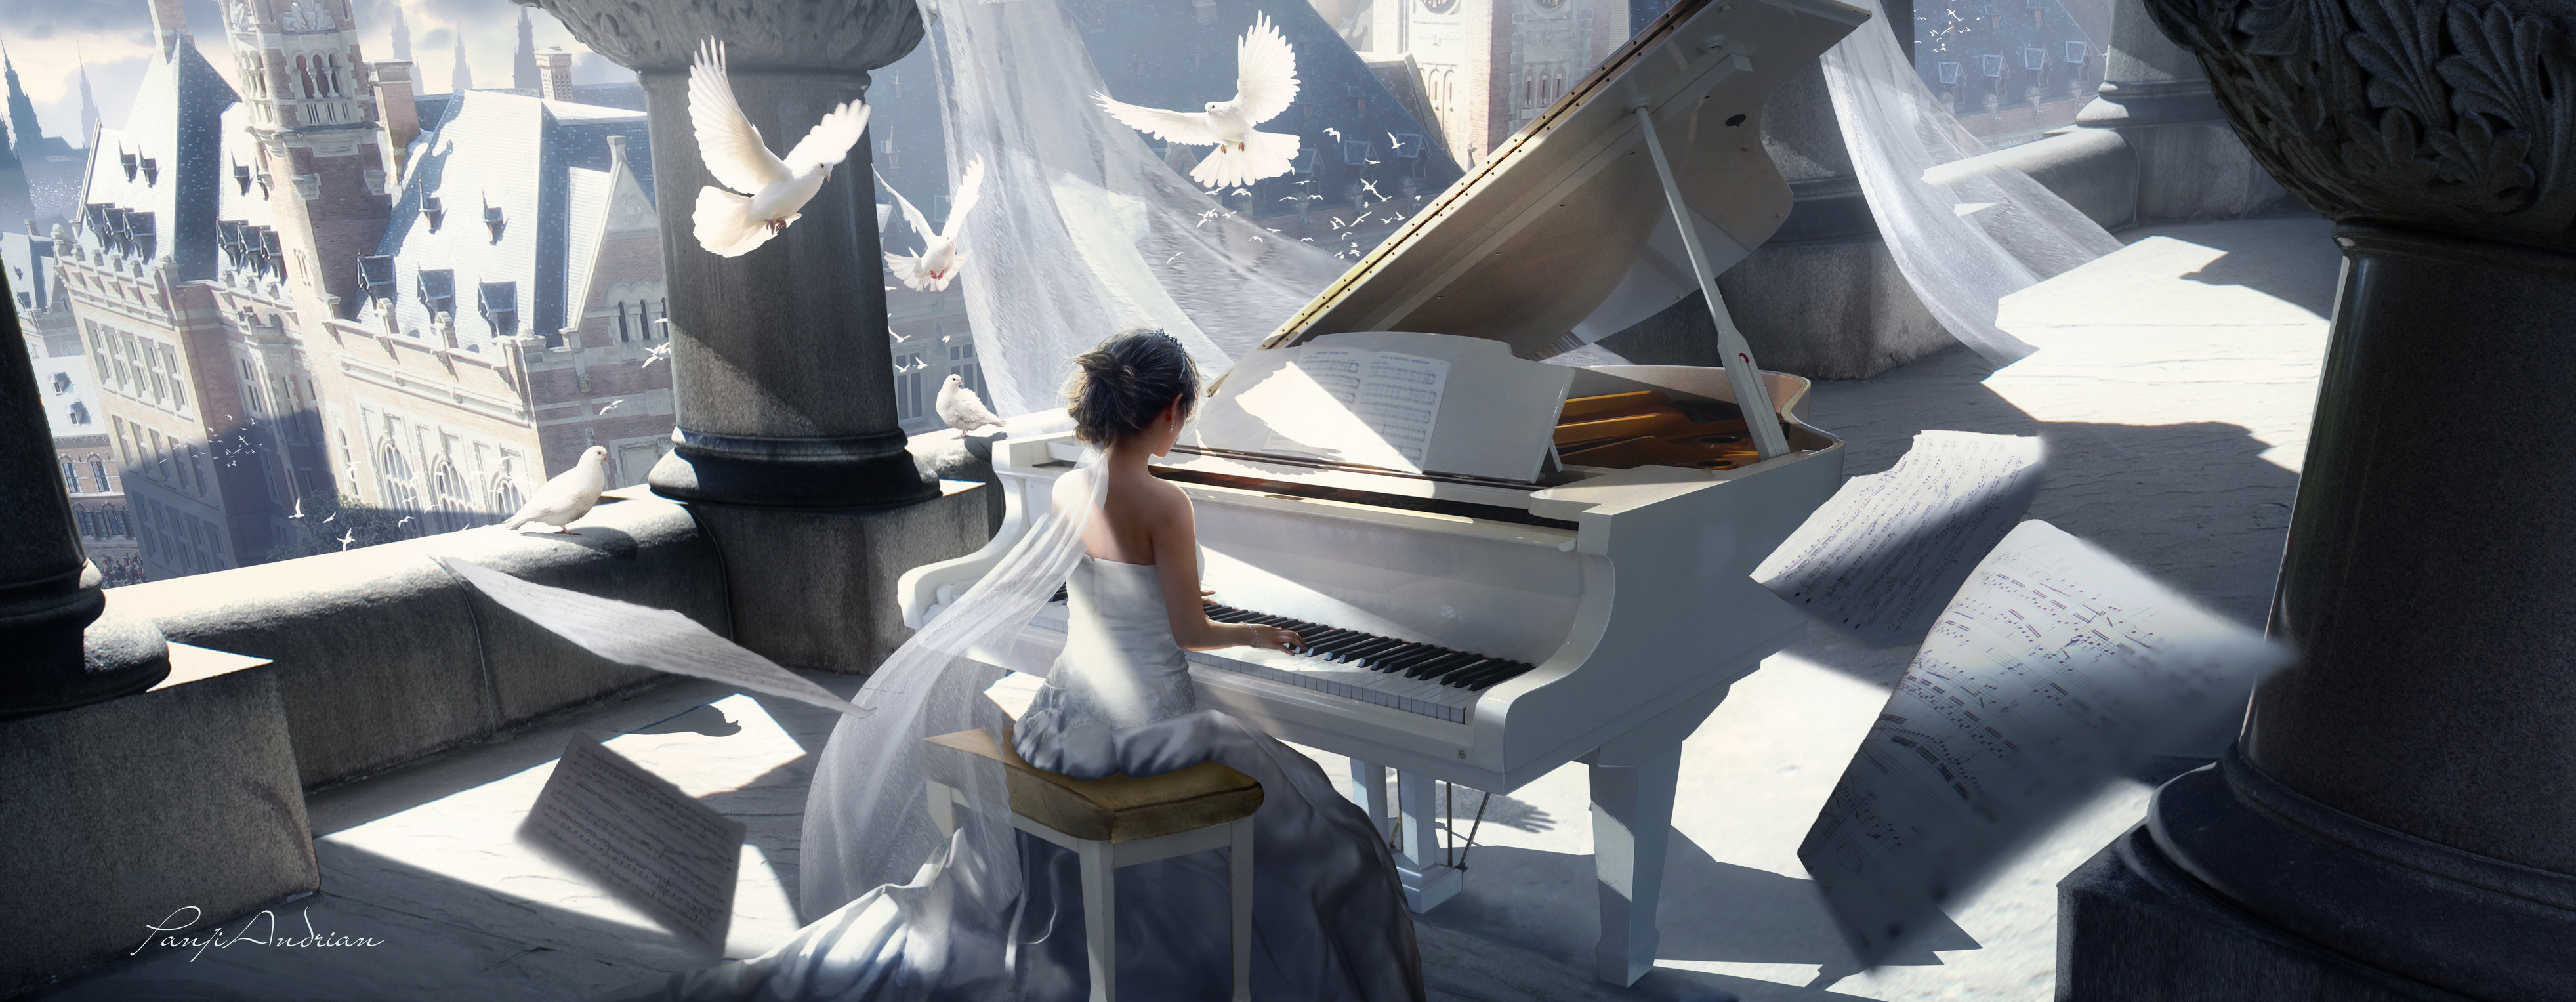 Girl Playing Piano Painting 4k Hd Artist 4k Wallpapers Hd Wallpapers